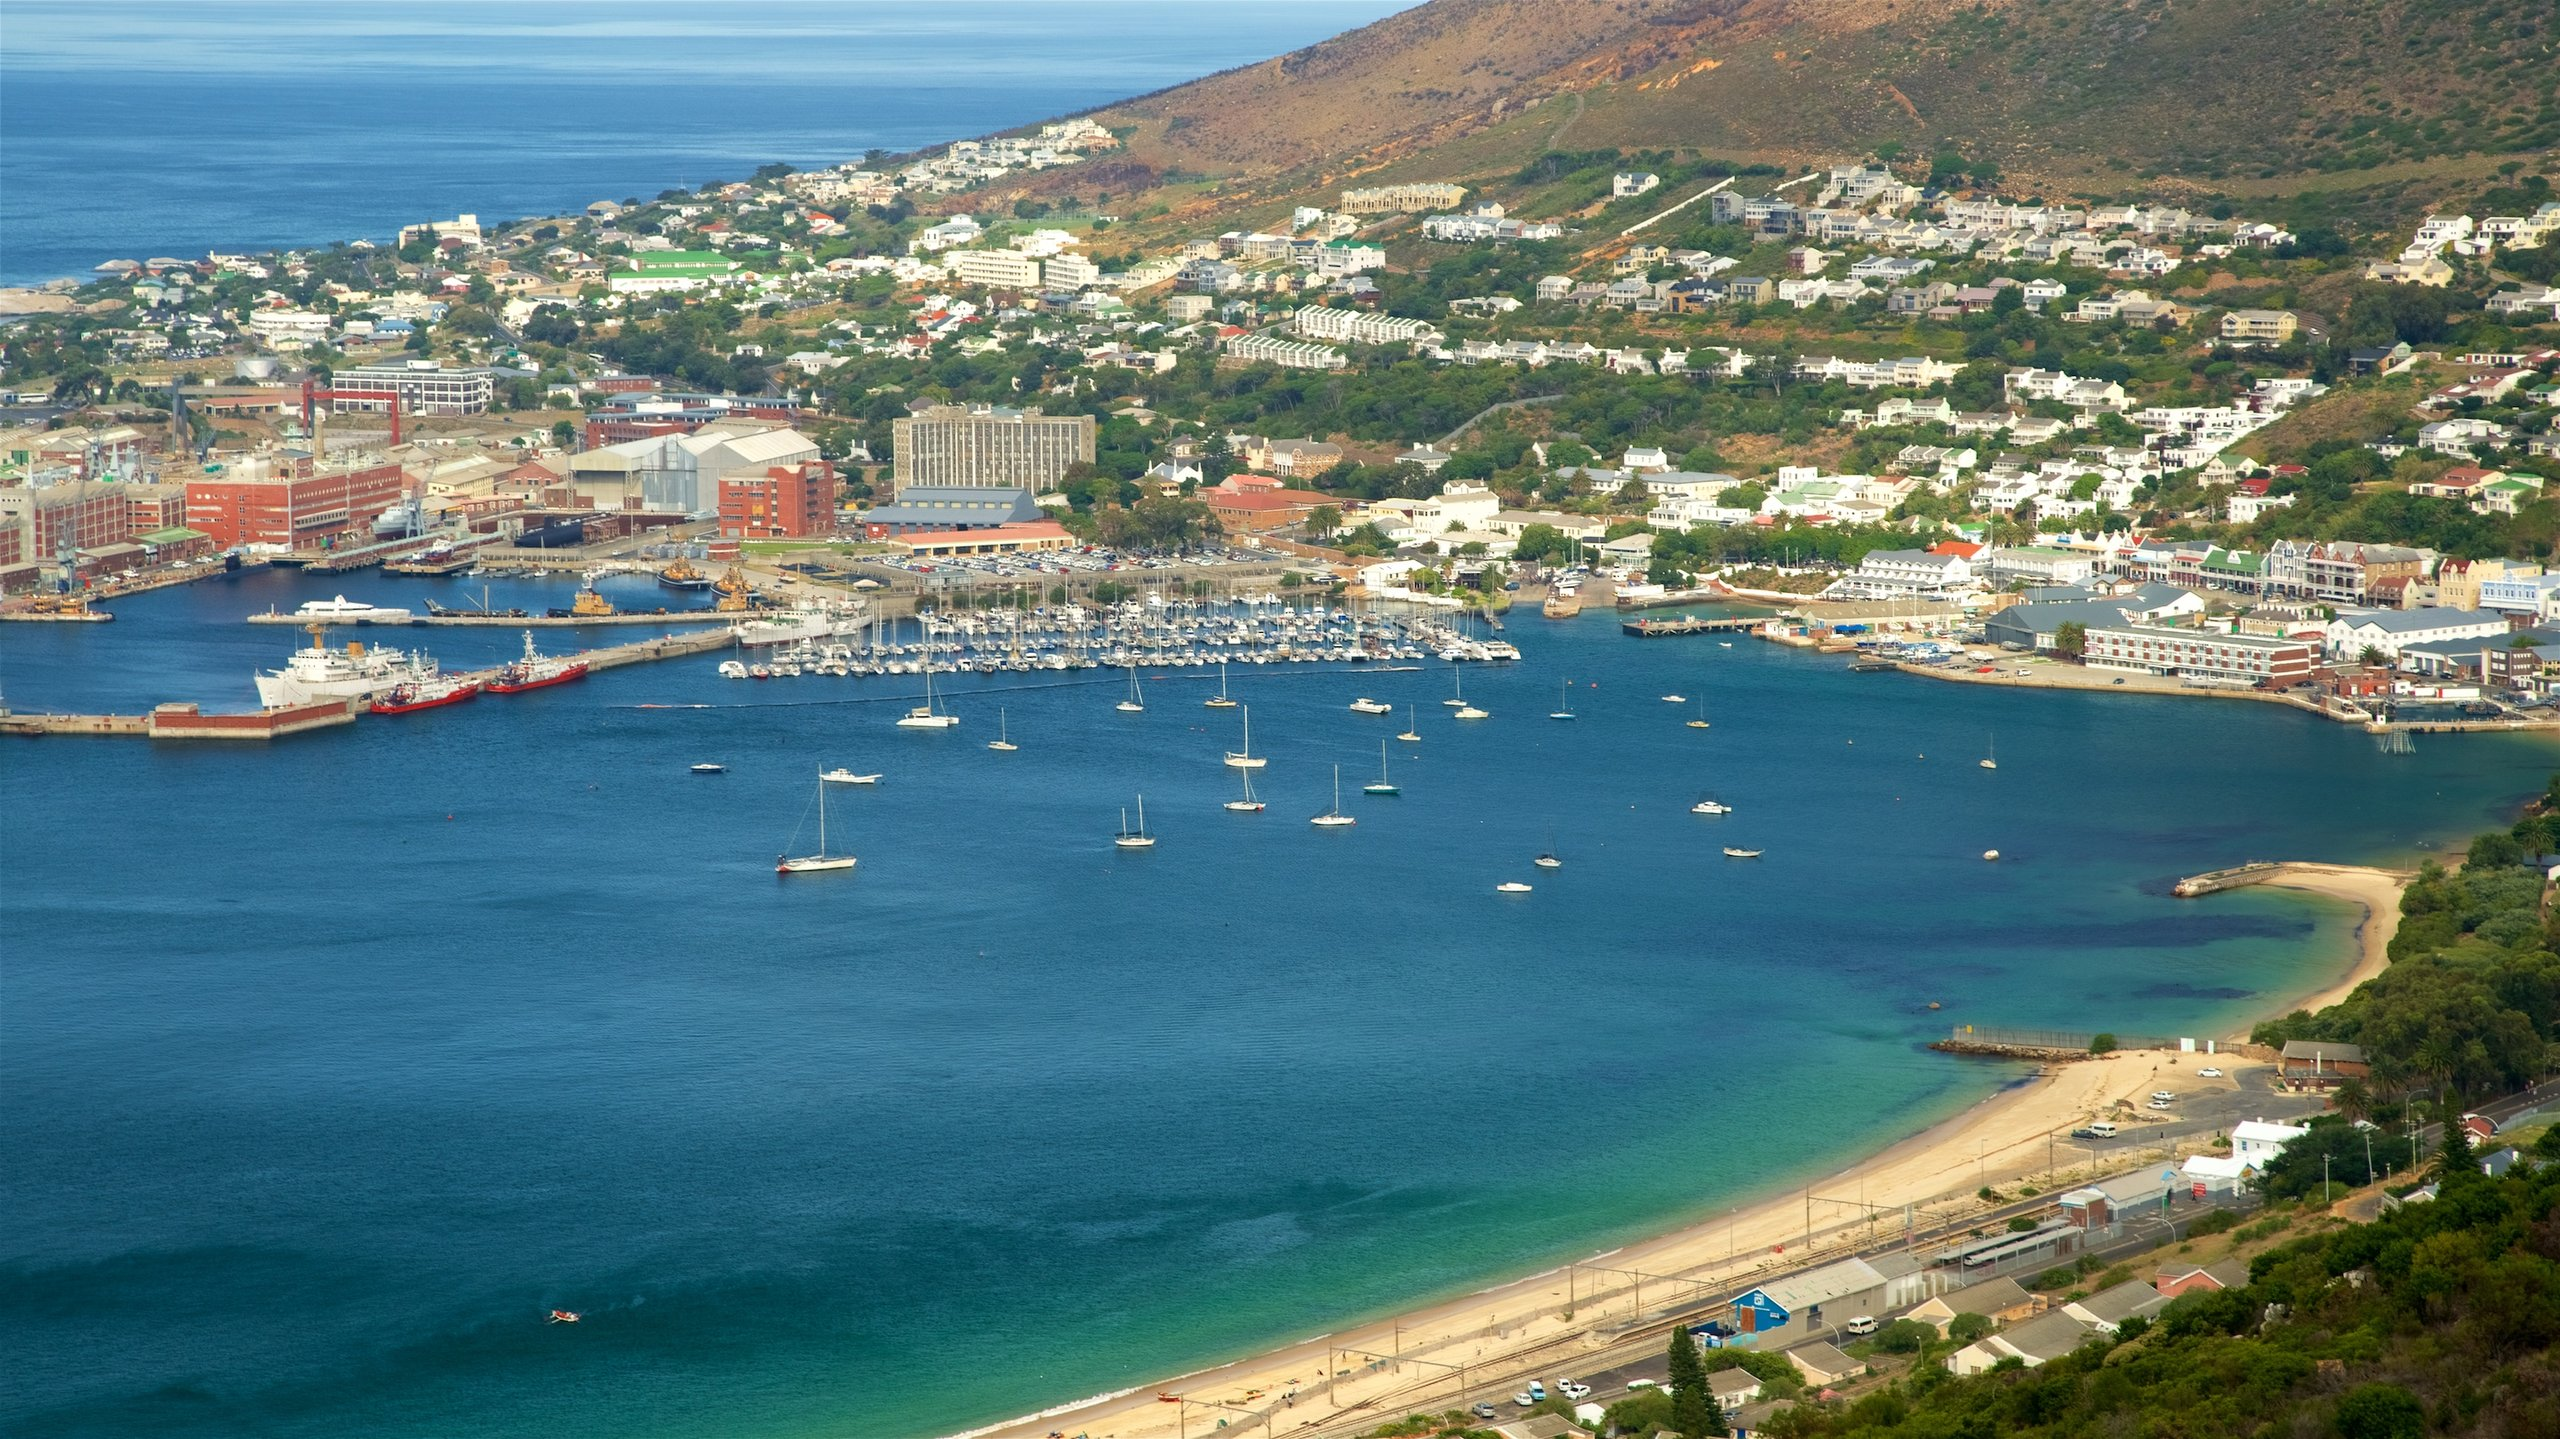 Simon's Town, Cape Town, Western Cape, South Africa